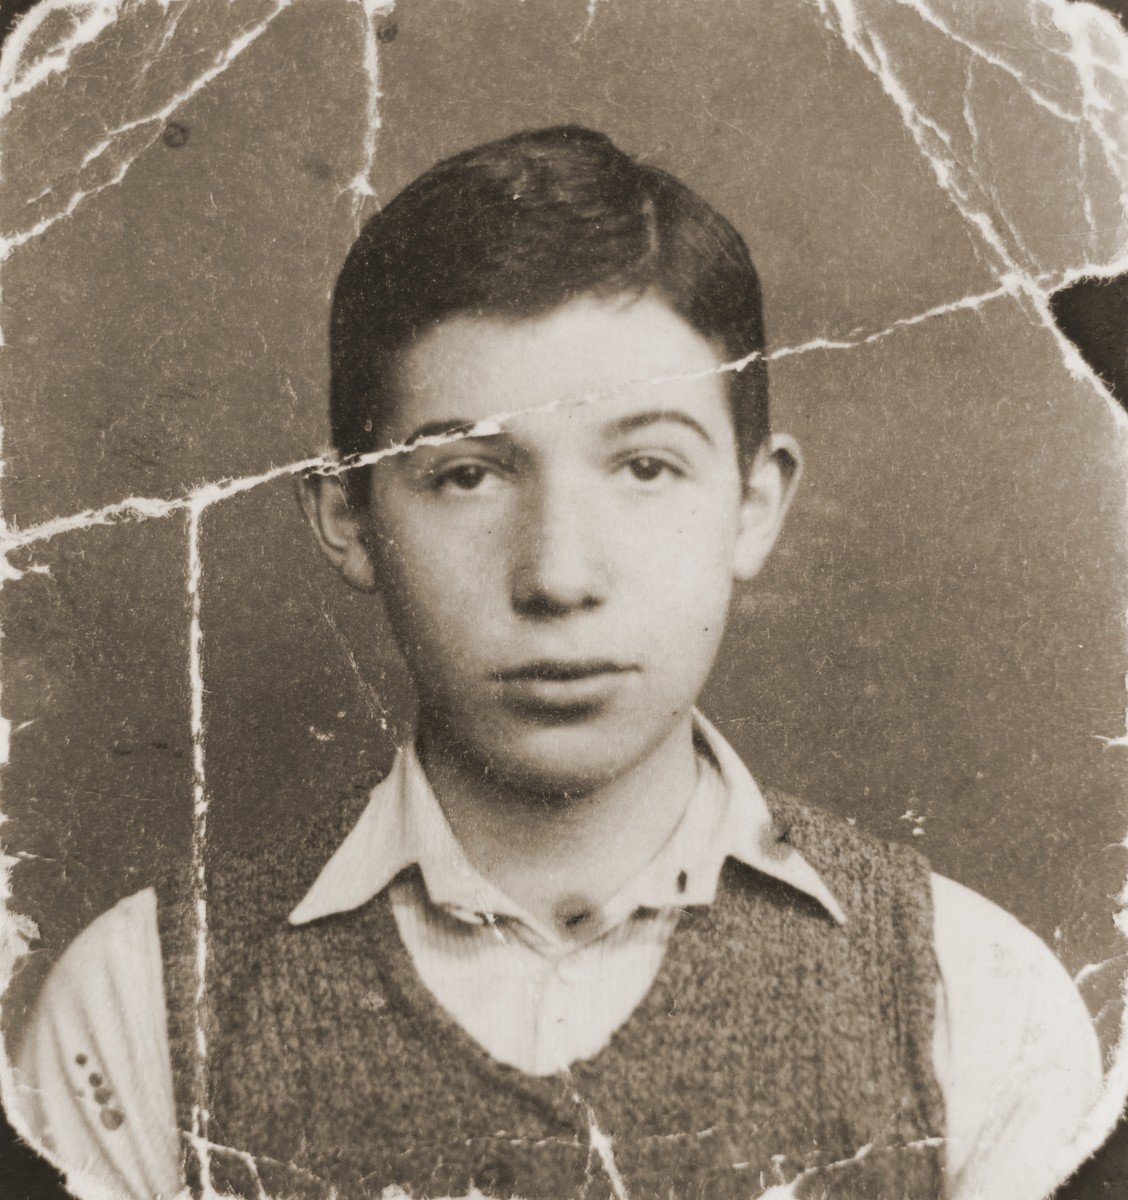 Damaged photograph of Dov Levin, a Jewish school boy in pre-war Kovno, that was preserved through the war by a friend in the sole of her shoe.  Dov Levin gave this photograph to his girlfriend, Rifkale (Rose Kurland), as a keepsake before leaving the Kovno ghetto to join partisans in the Rudninkai Forest.  Rifkale hid the photograph in the sole of her shoe and kept it with her through her deportation from the ghetto and incarceration in the Stutthof concentration camp.  Dov and Rifkale were reunited in 1984 when she returned the photo to him.